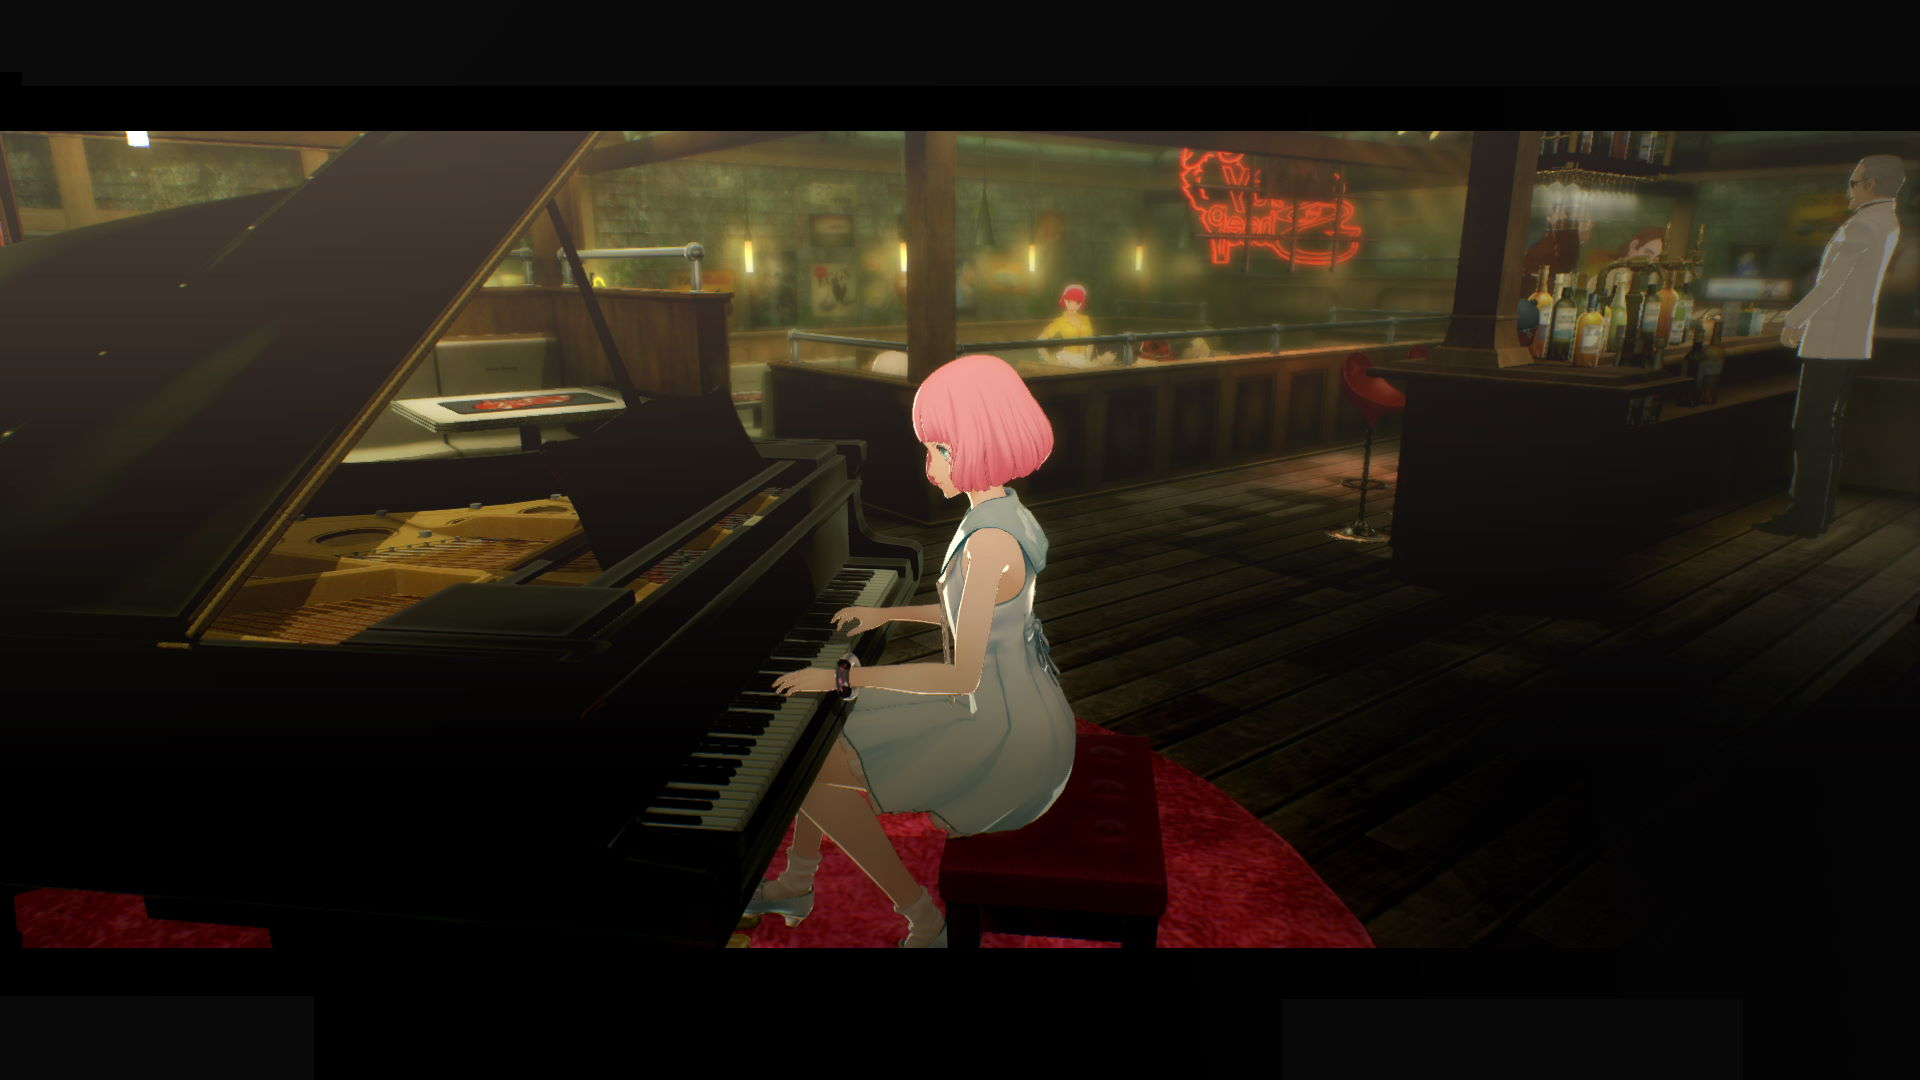 Qatherine playing piano